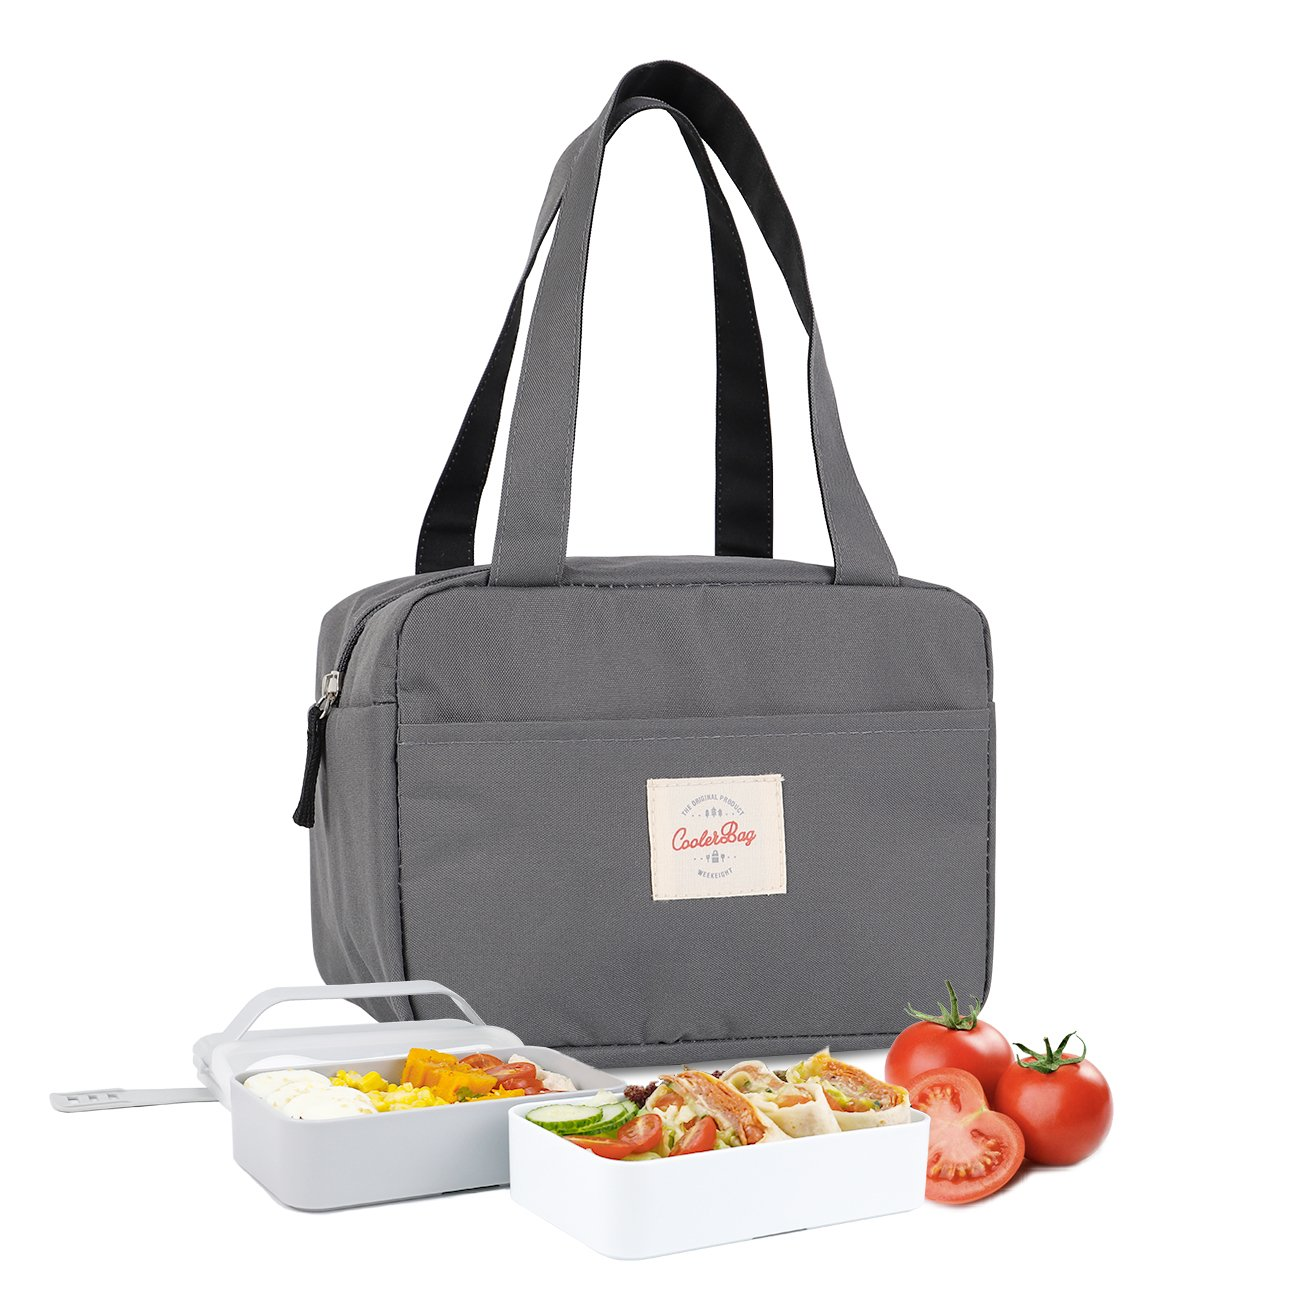 Buringer Soft Insulated Lunch Bag Tote, Cooler Lunch Box for Women & Men, Portable Thermal Insulated Cooler Bag Mini Lunch Bag for Adults & Kids - Dark Grey